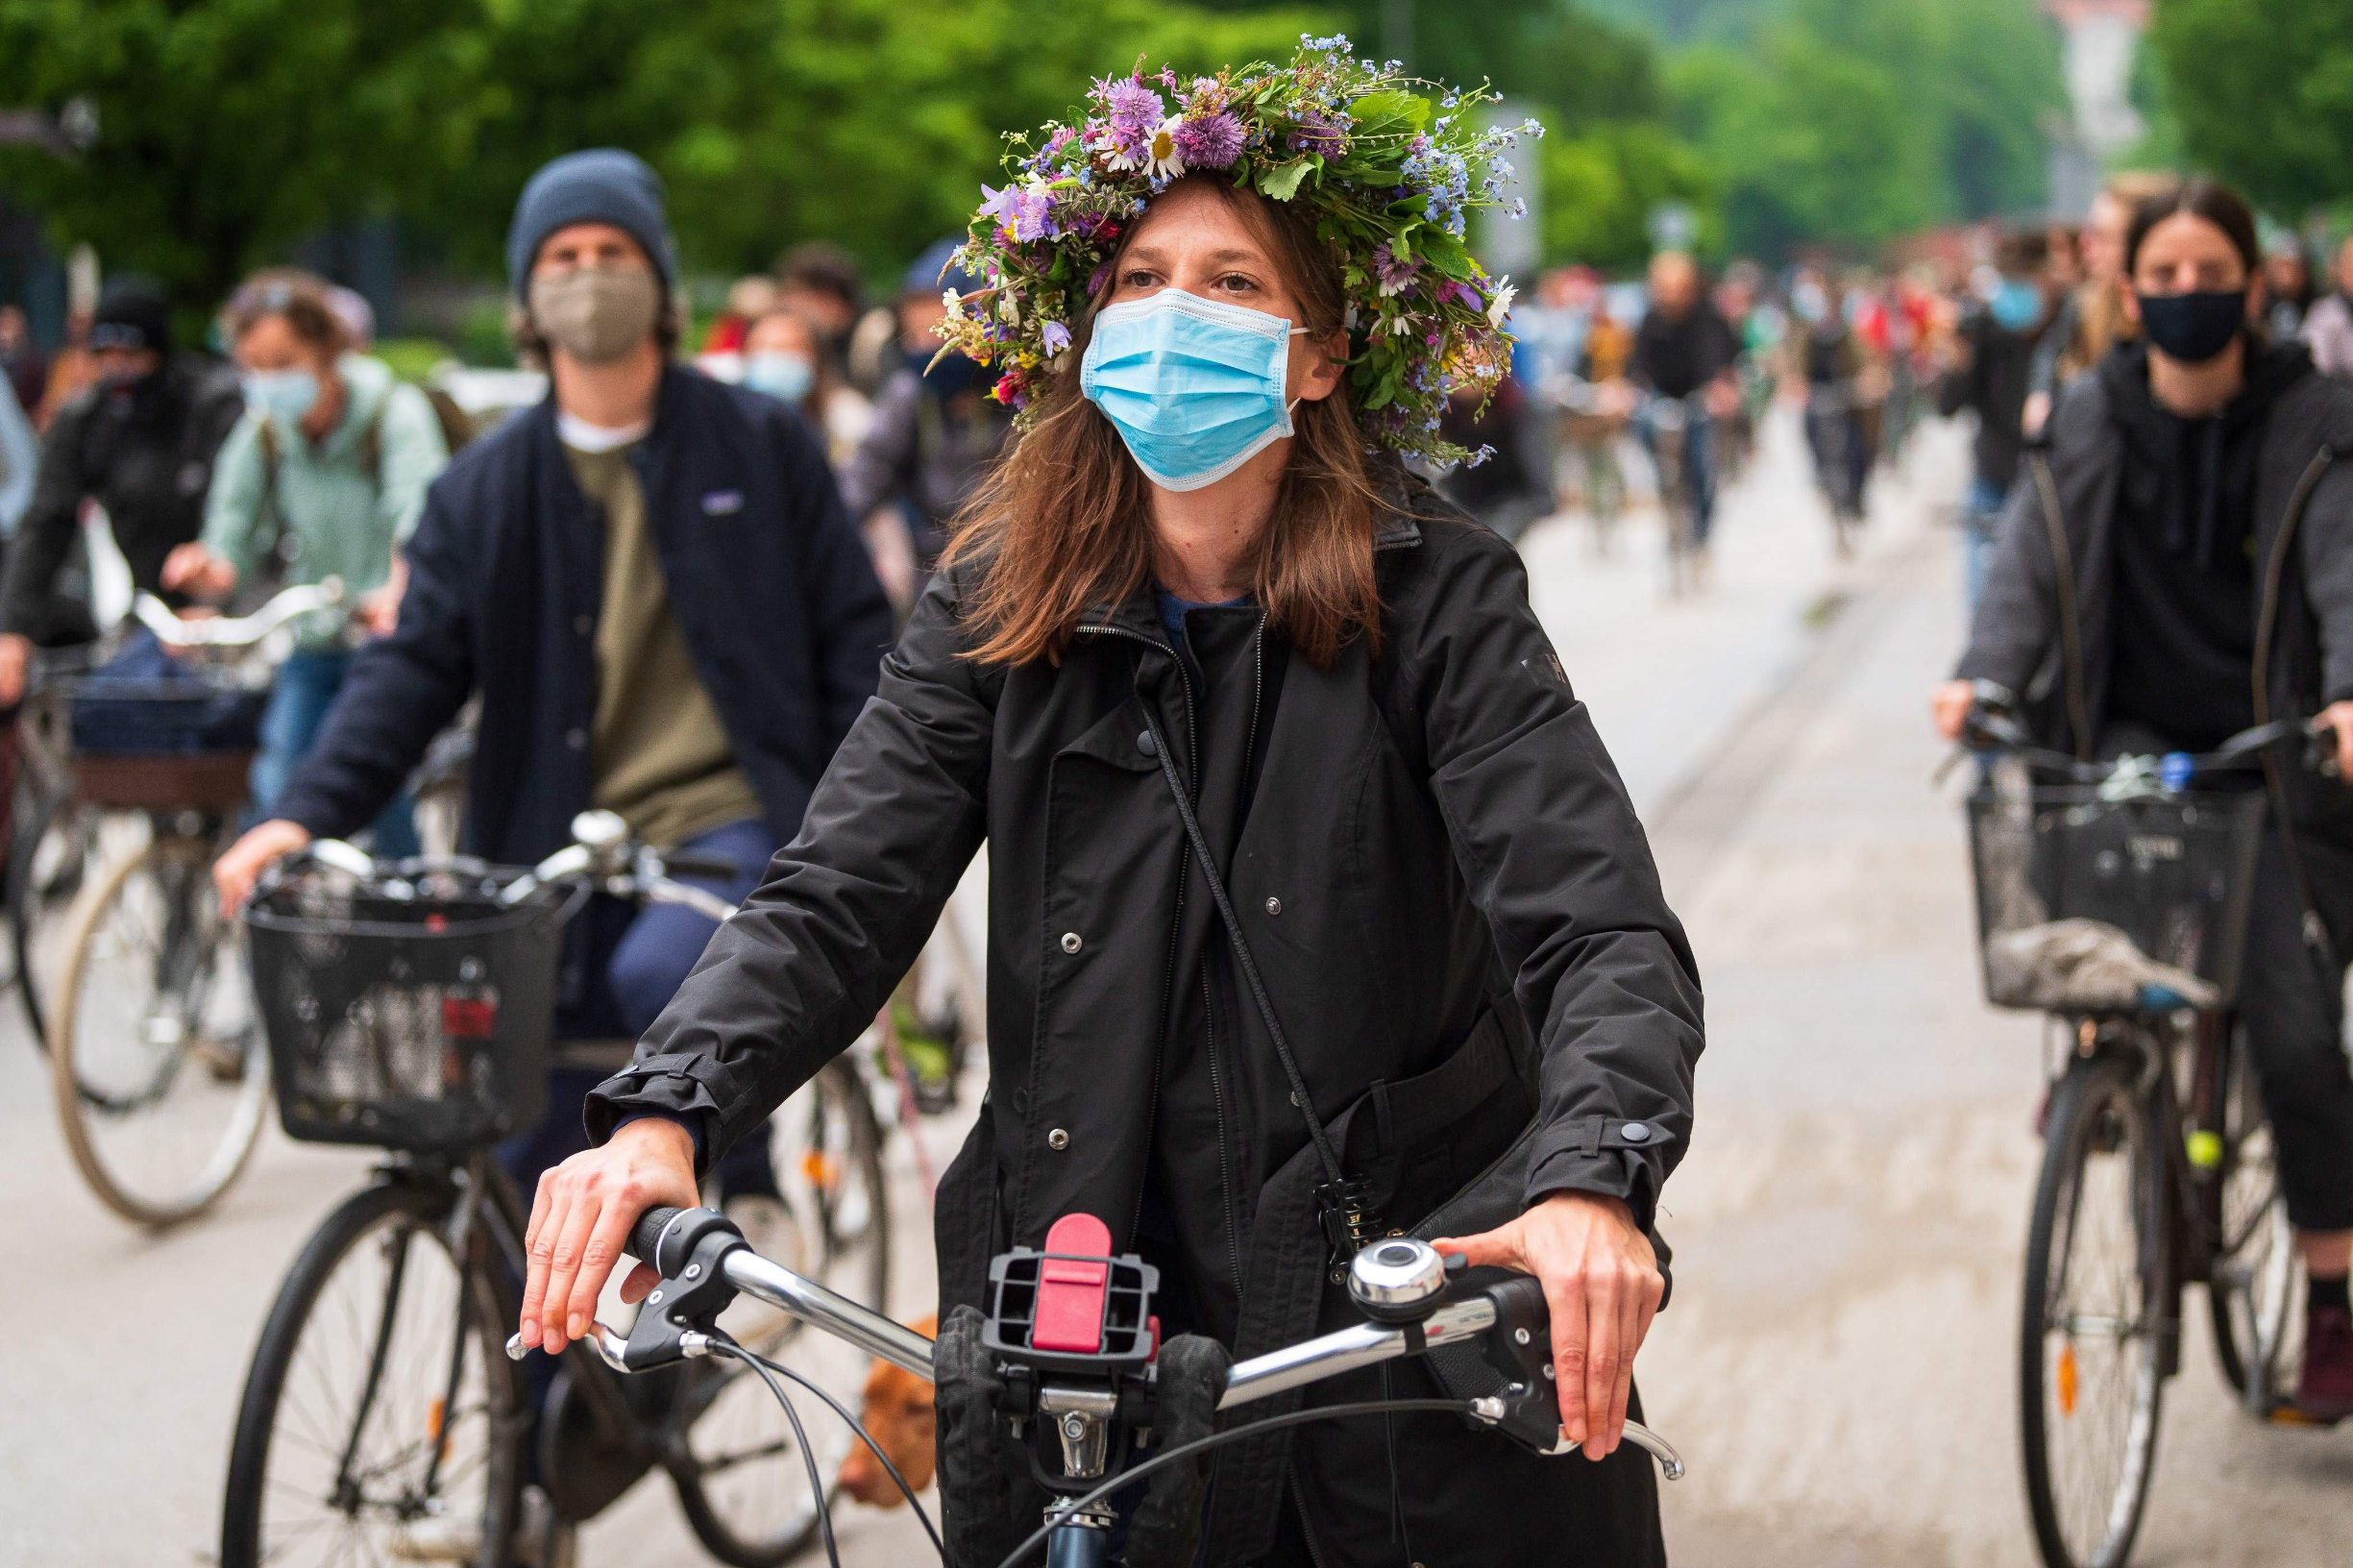 A Slovenian citizen, wearing a protective facemask, rides her bikes, on May 15, 2020, as she takes part in a demonstration to block the centre of the capital Ljubljana, to protest against the centre-right government, accusing it of corruption and of using the COVID-19 (the novel coronavirus) crisis to restrict freedom. (Photo by Jure Makovec / AFP)